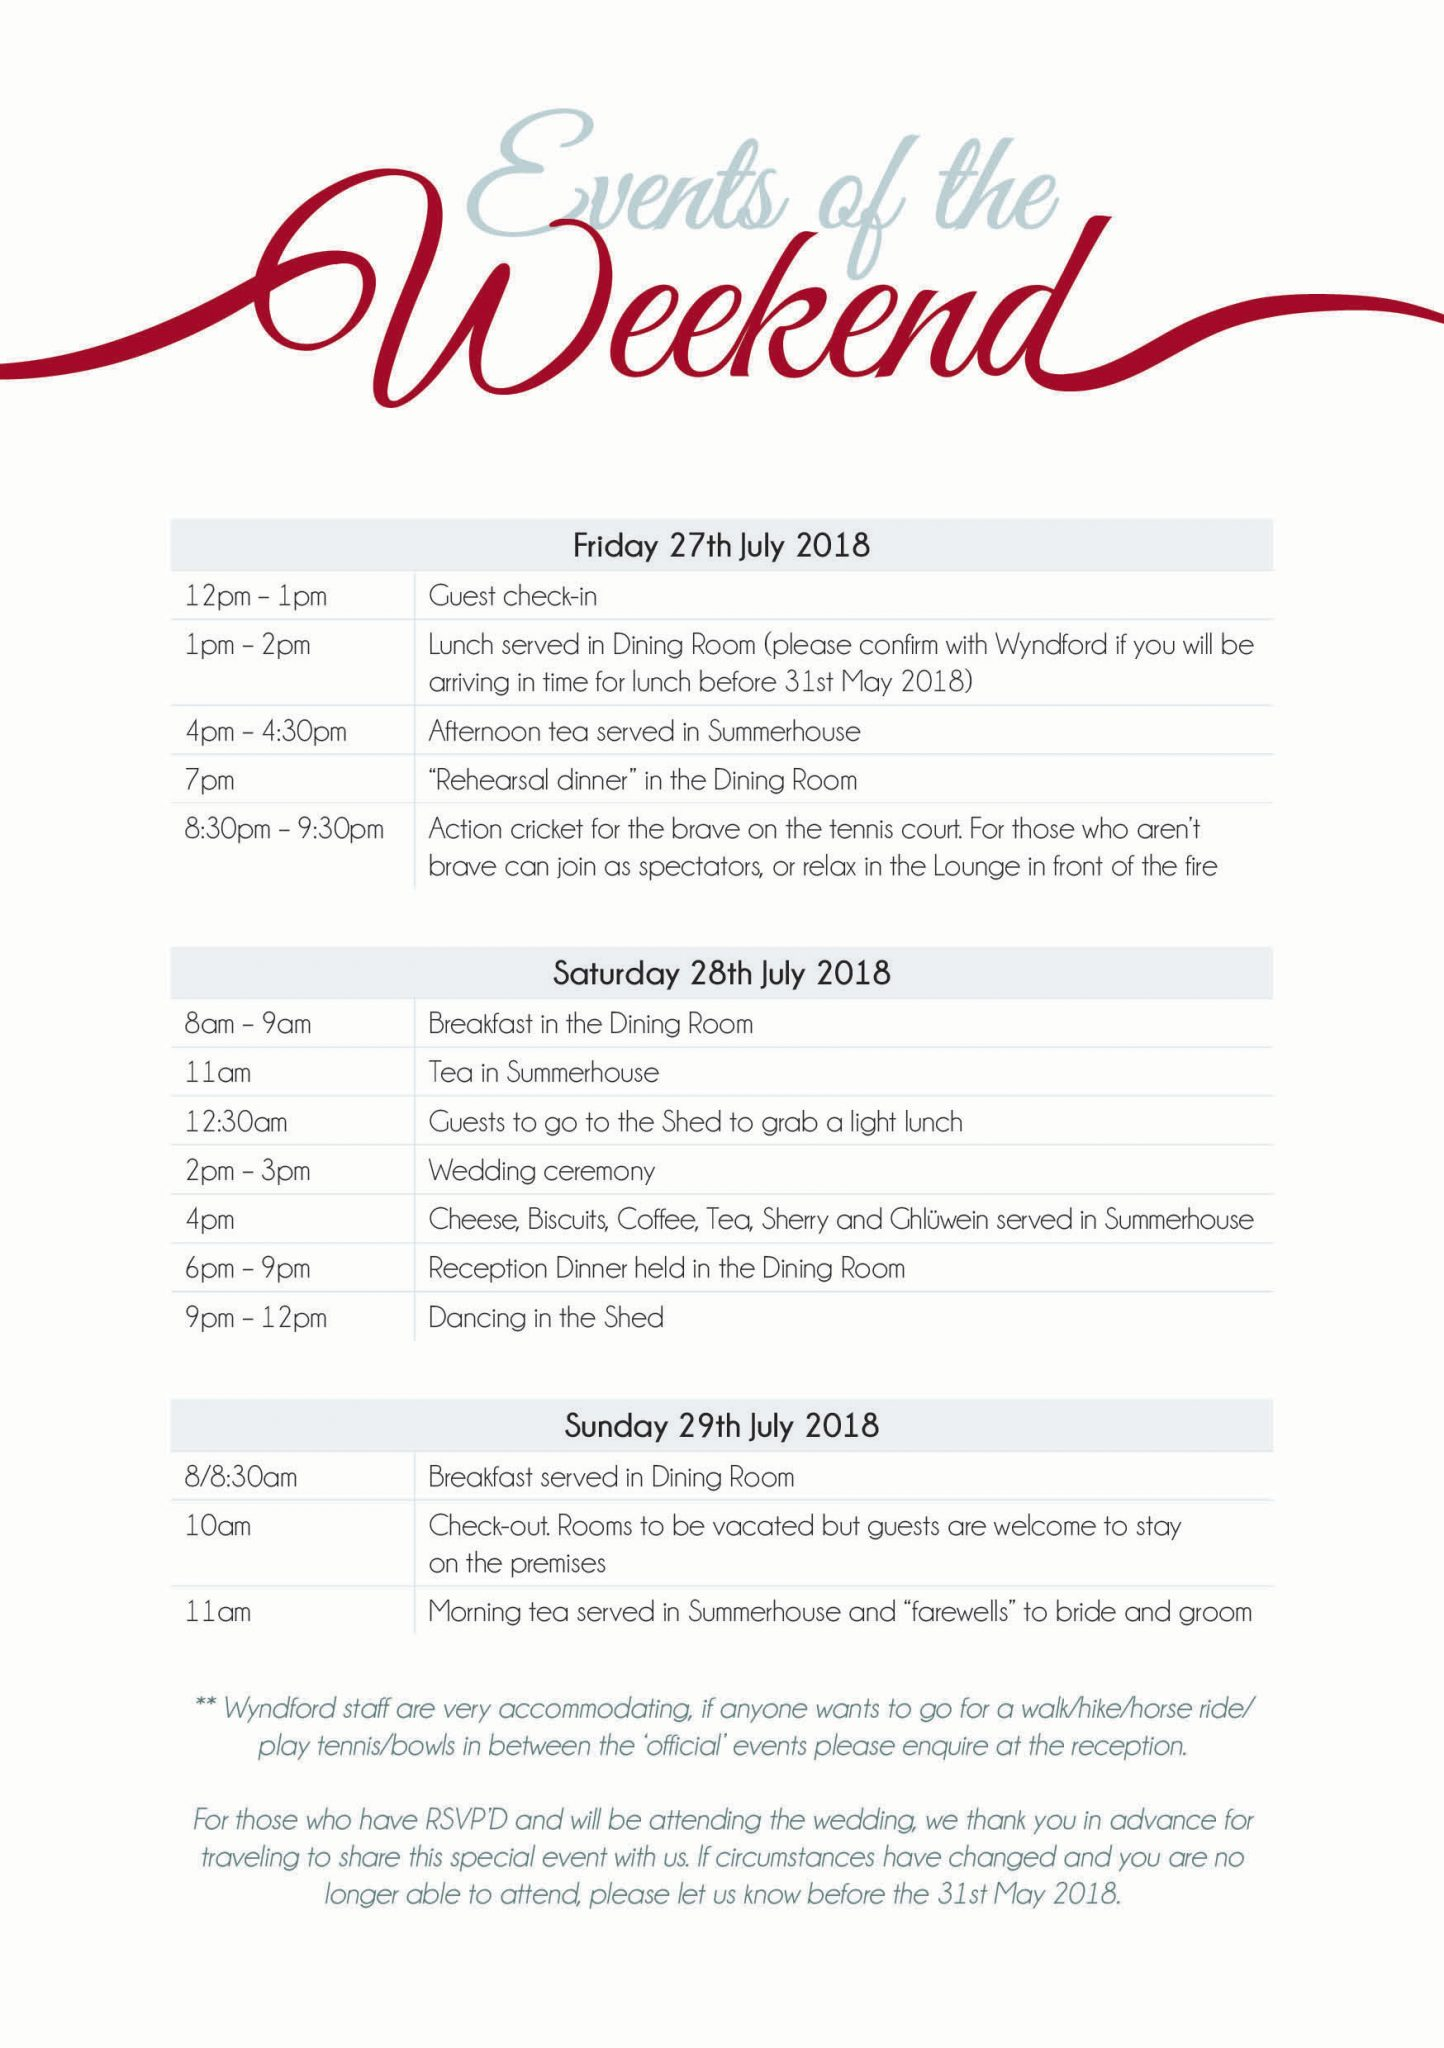 Wedding Itinerary - events of the weekend